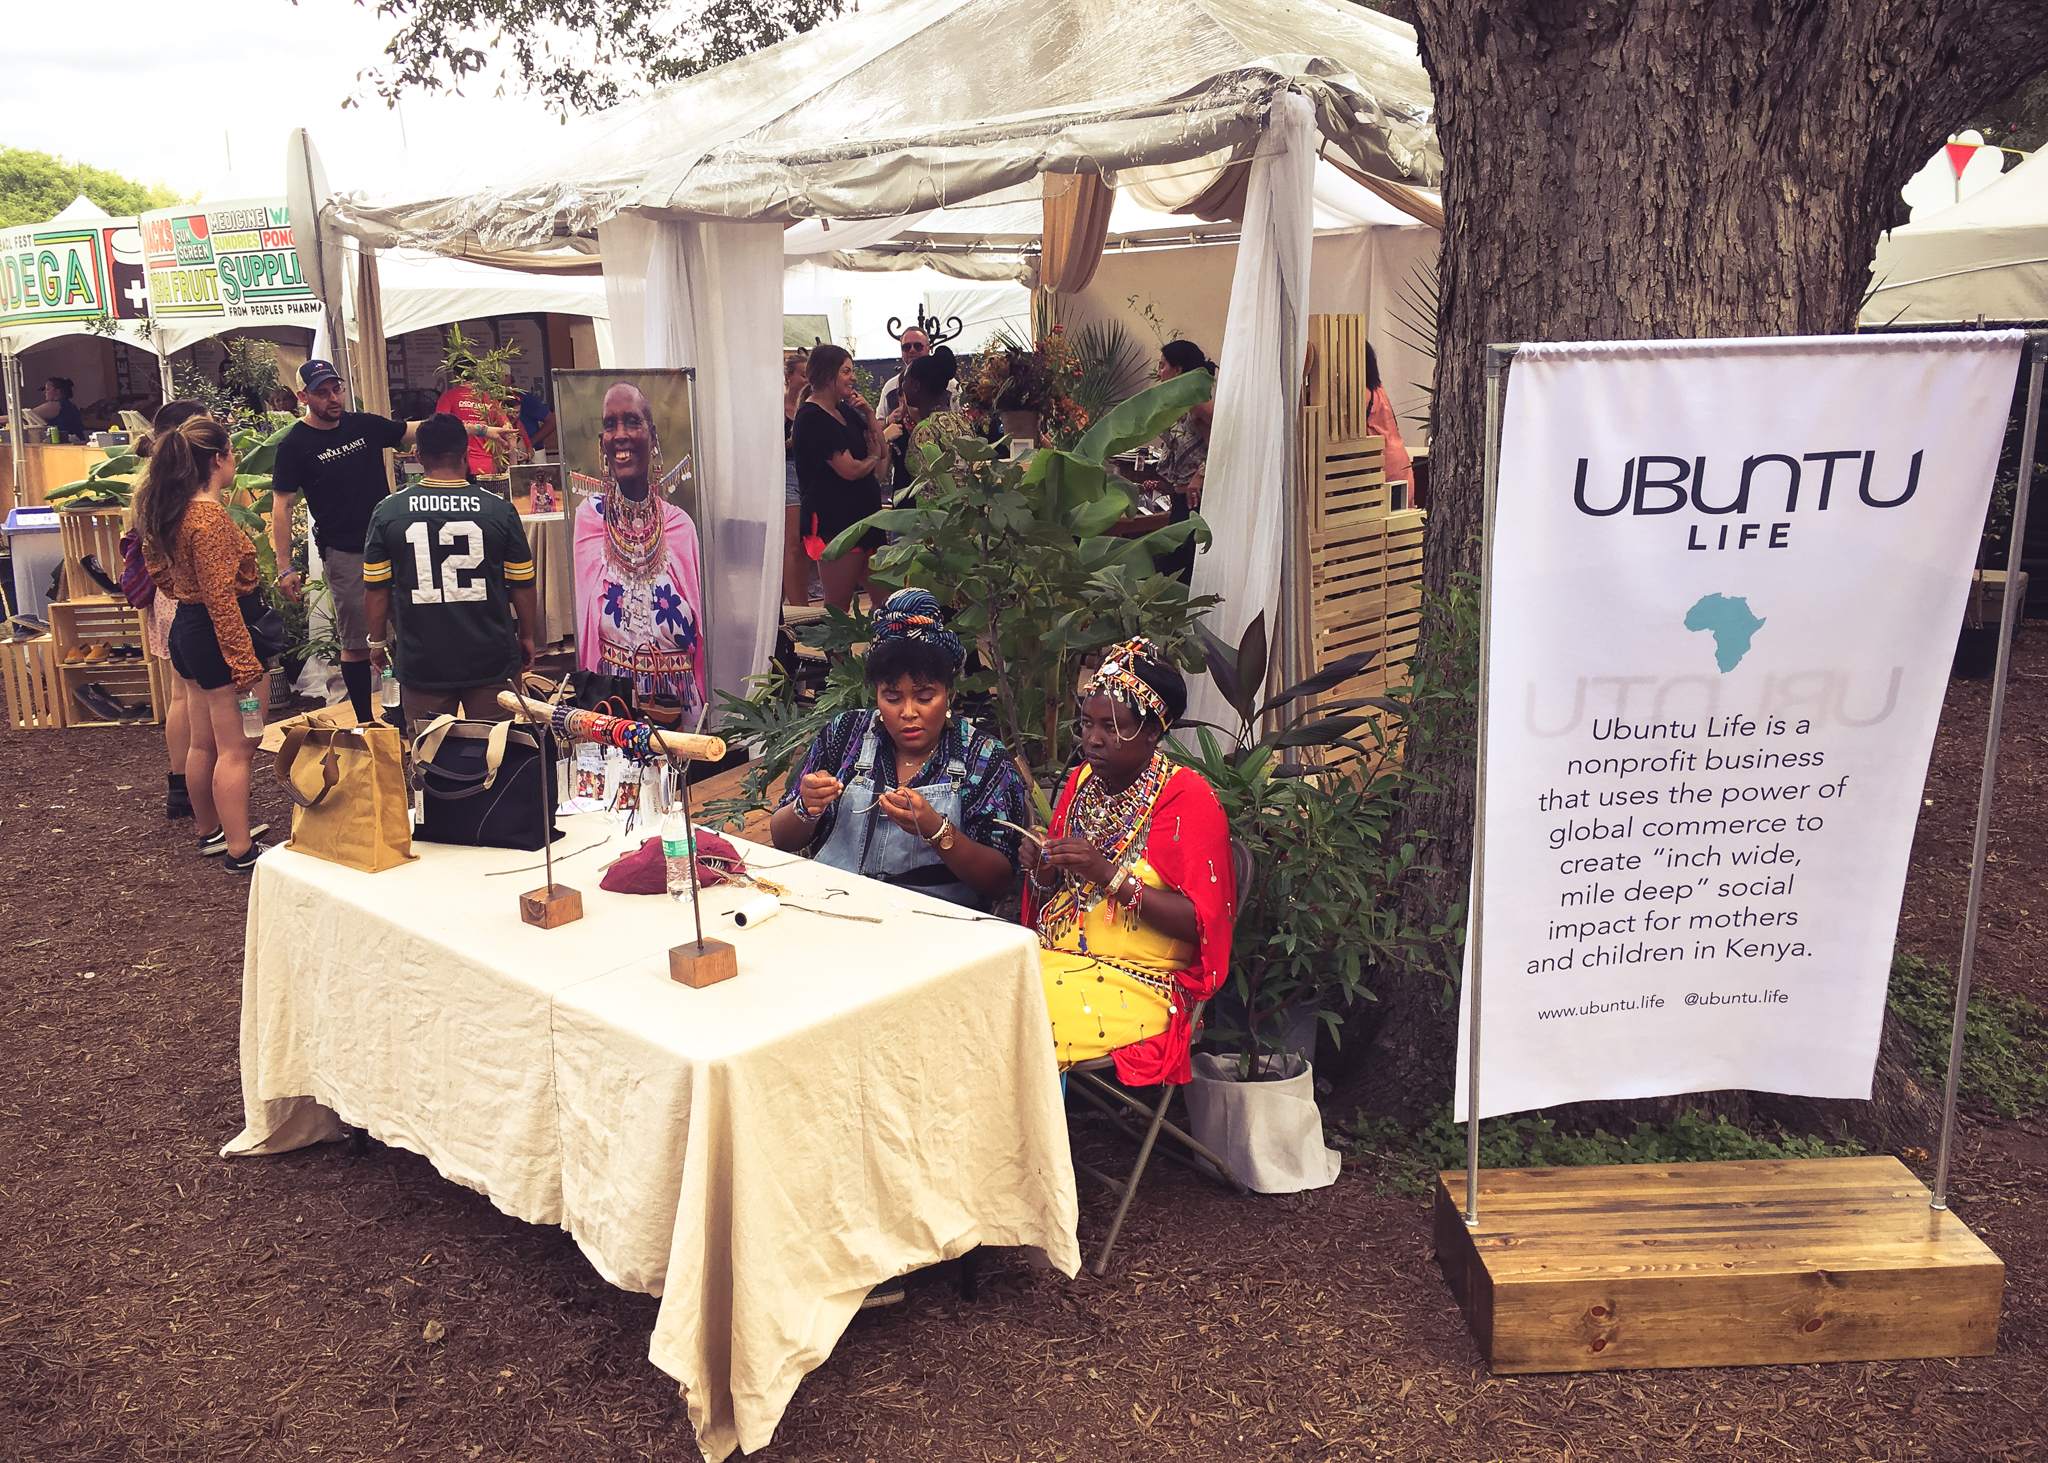 A successful example of brand partnership shared value last year: Kenyan nonprofit Ubuntu Life at Austin City Limits Music Festival (a part of publicly-traded corporate giant Live Nation).